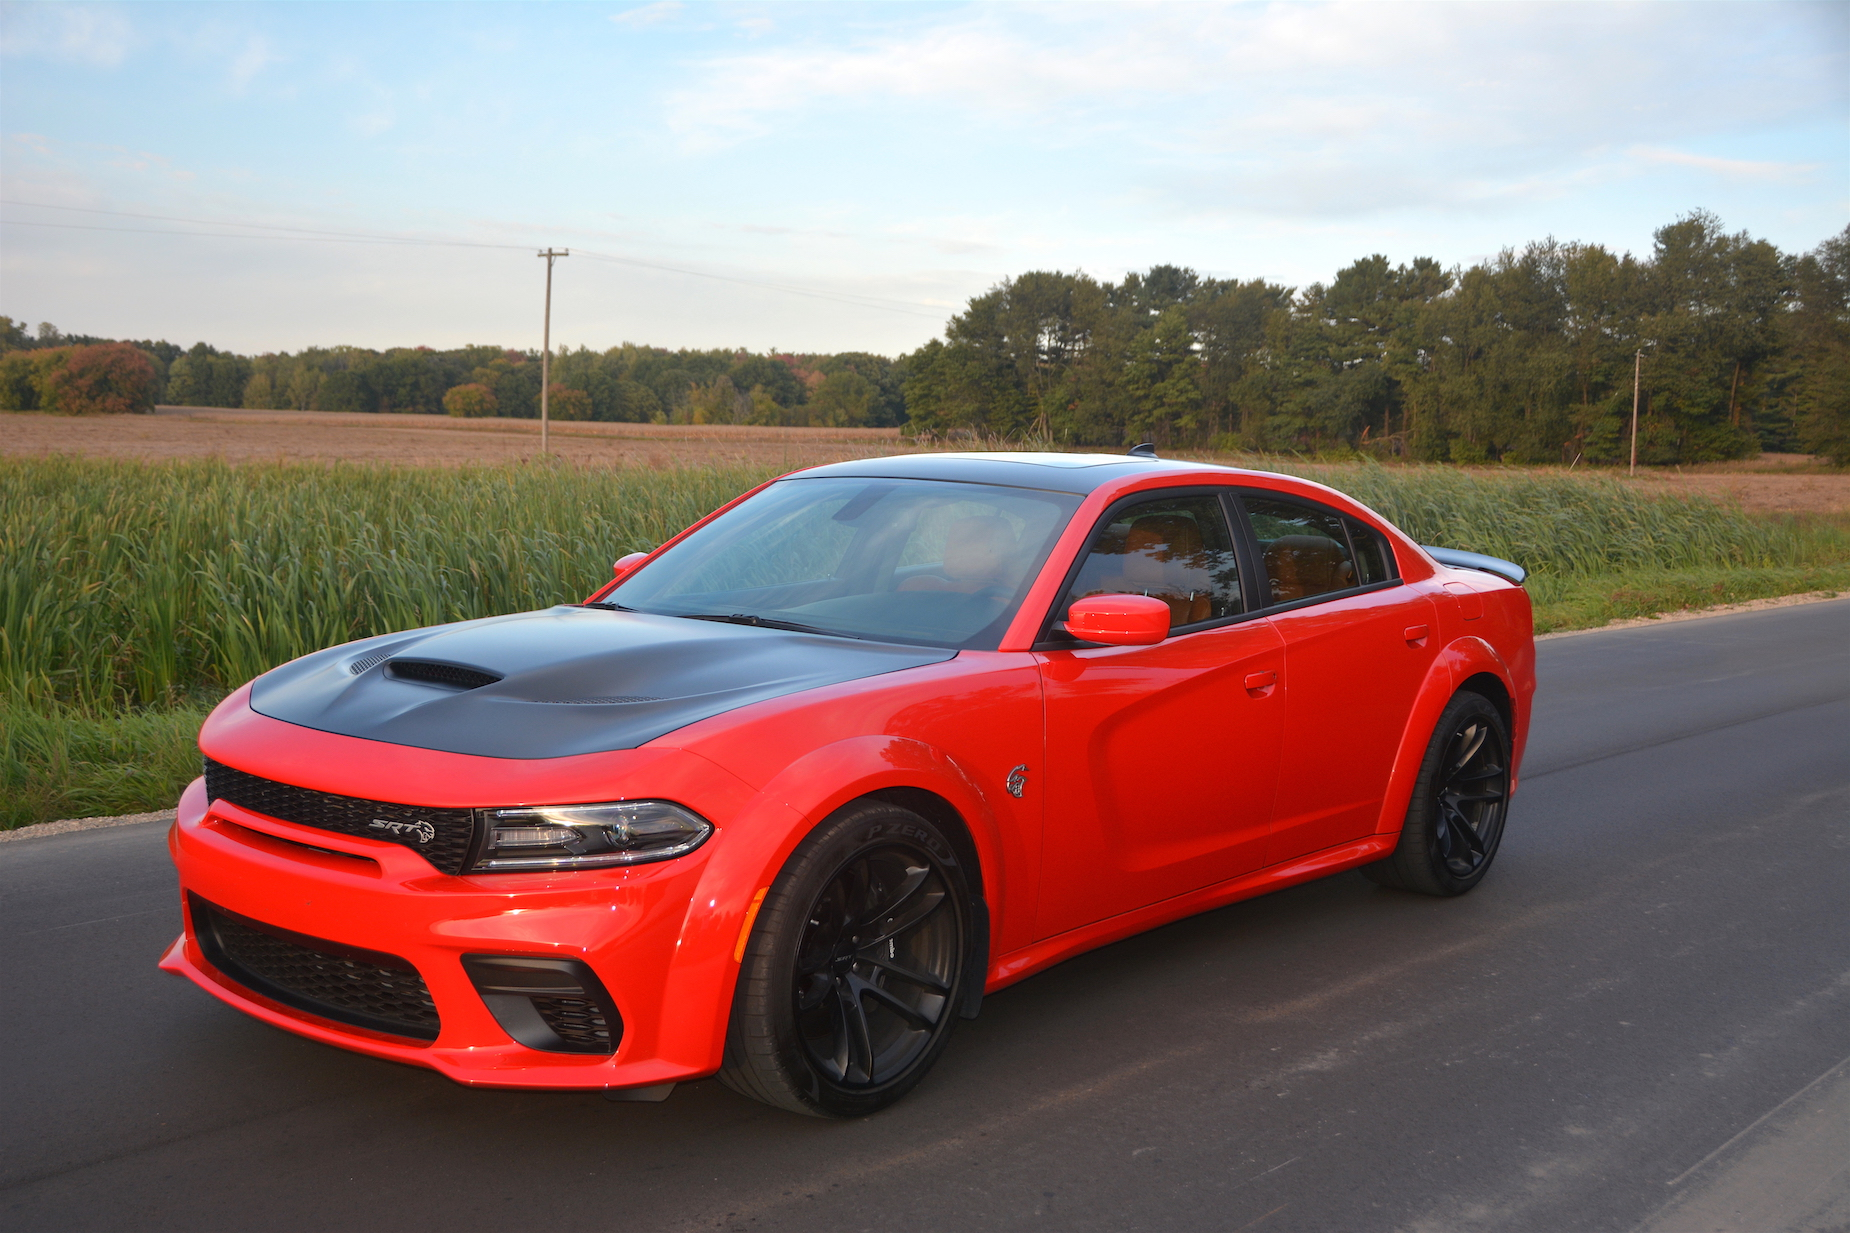 Dodge Charger SRT Hellcat Widebody Review